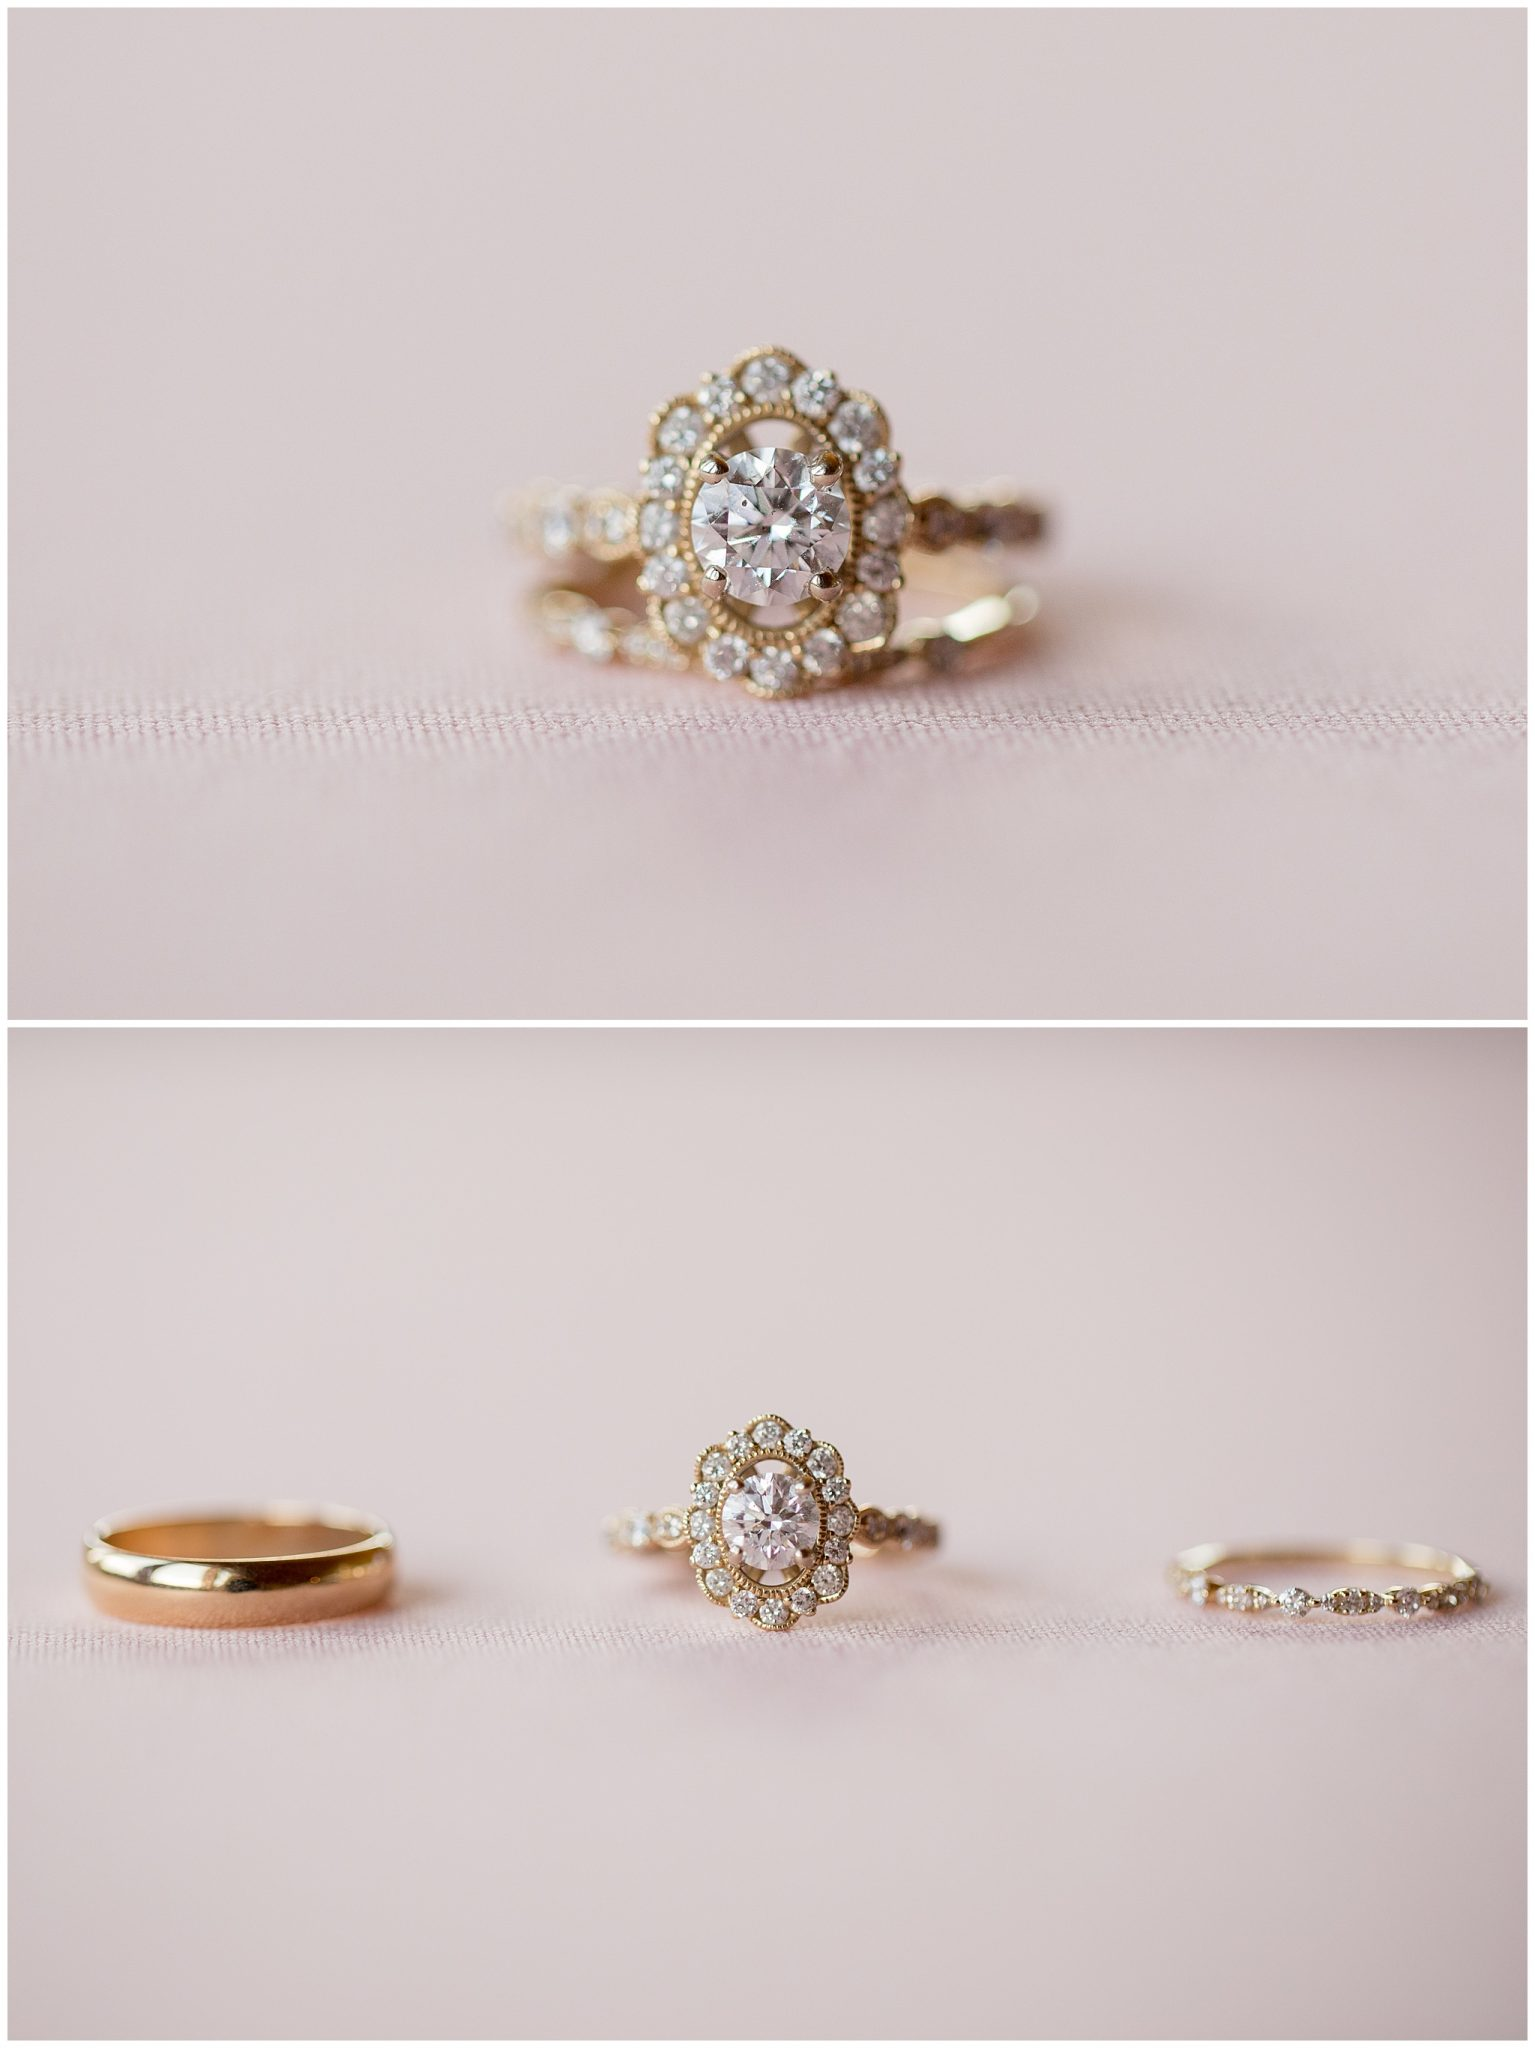 Ring shots of a small intimate wedding in Breckenridge Colorado